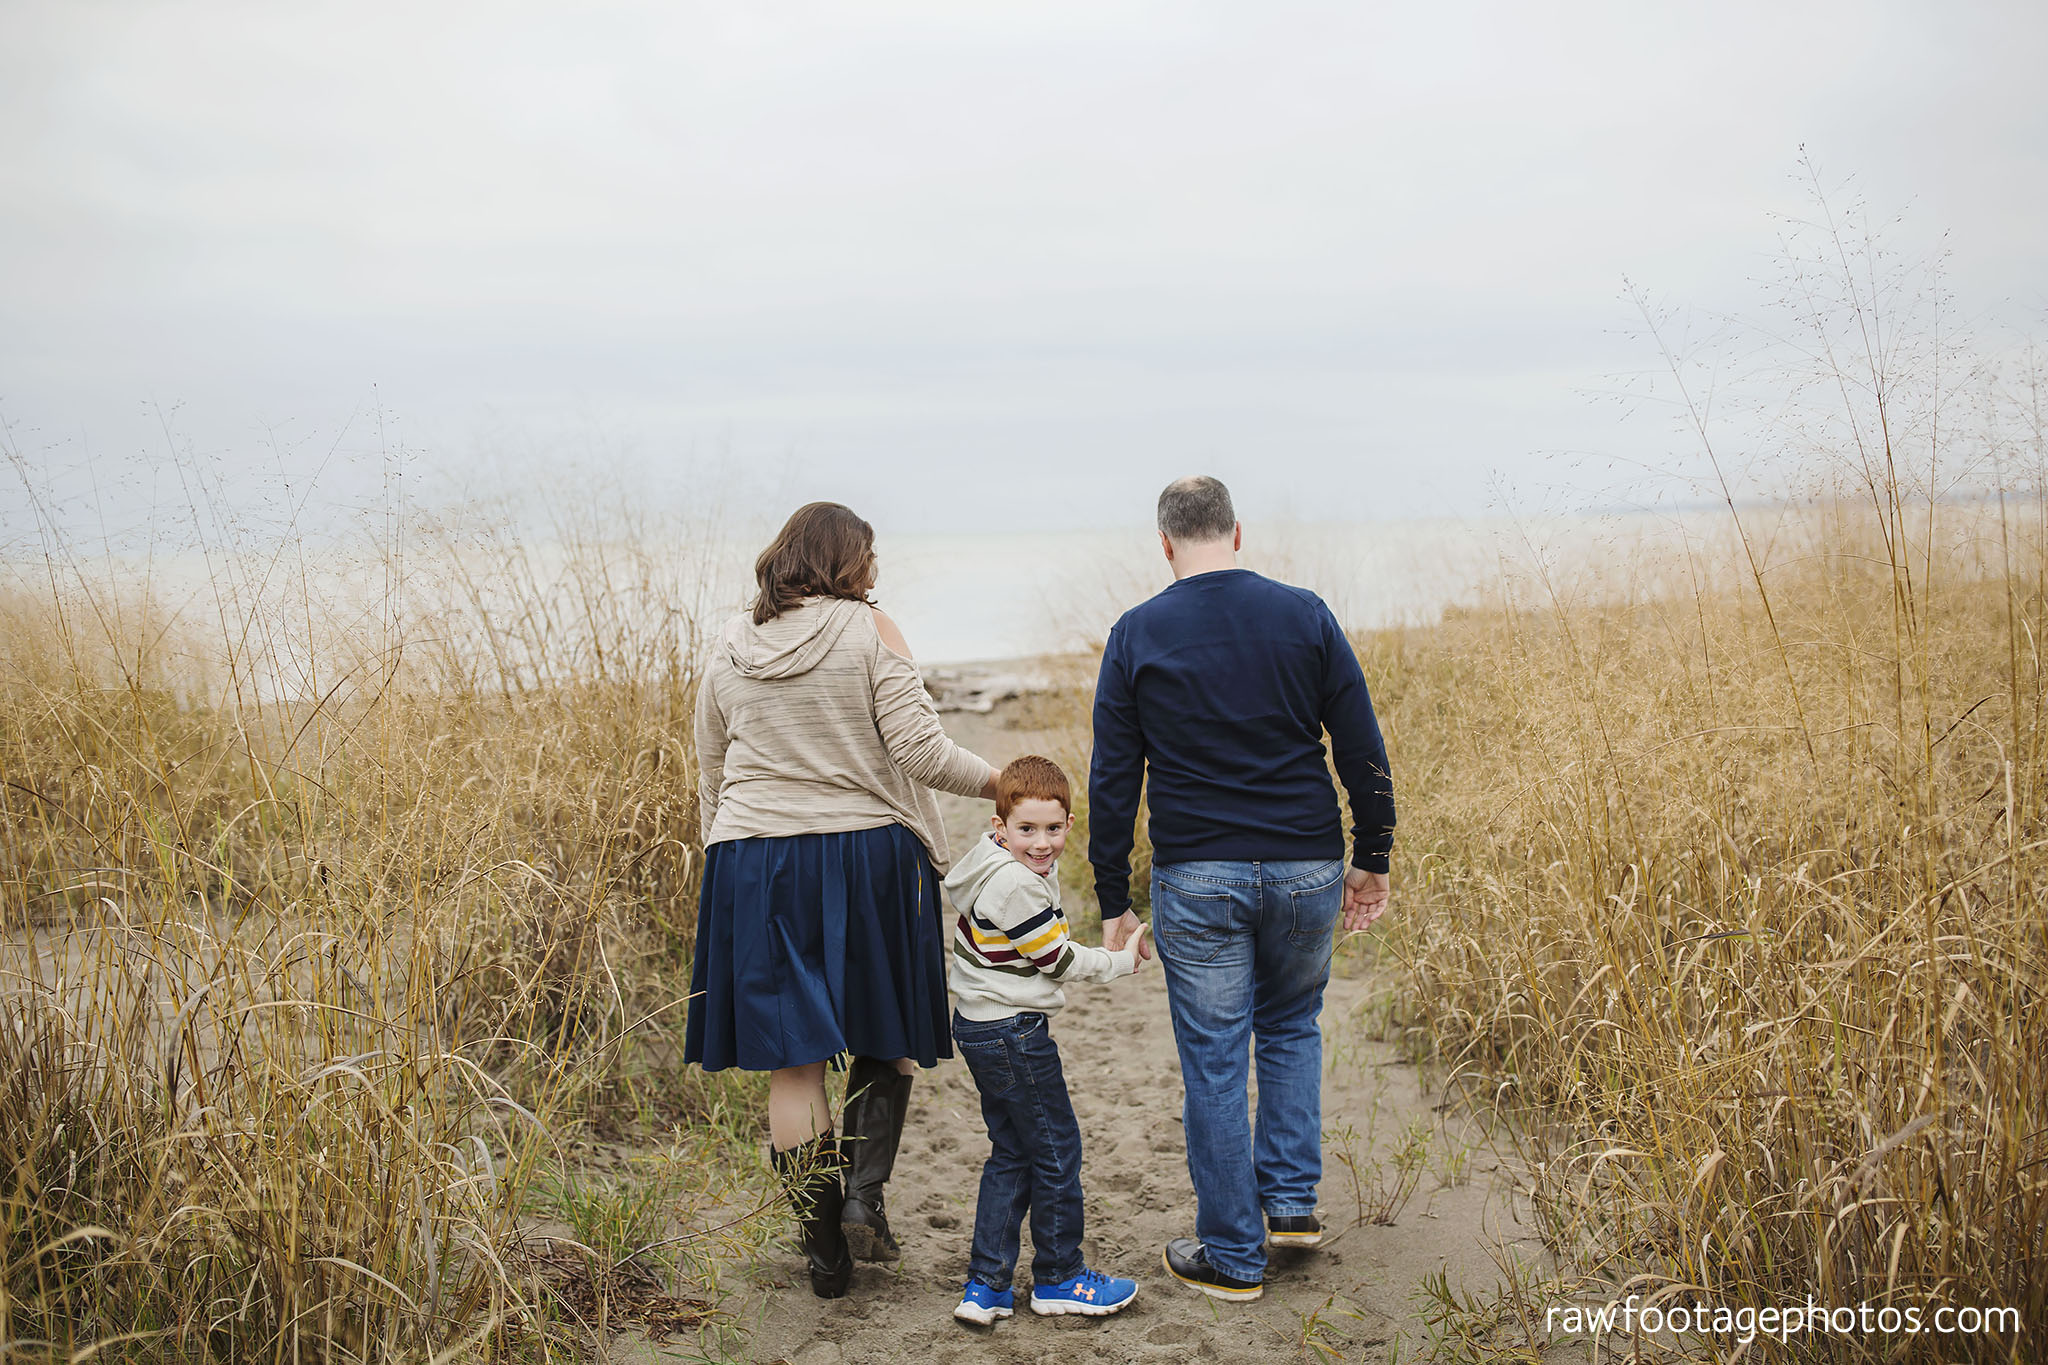 london_ontario_family_photographer-port_stanley_photography-raw_footage_photography-family_photos-beach_photos-fall_family_photos-lifestyle_family_photography-candid_photographer009.jpg